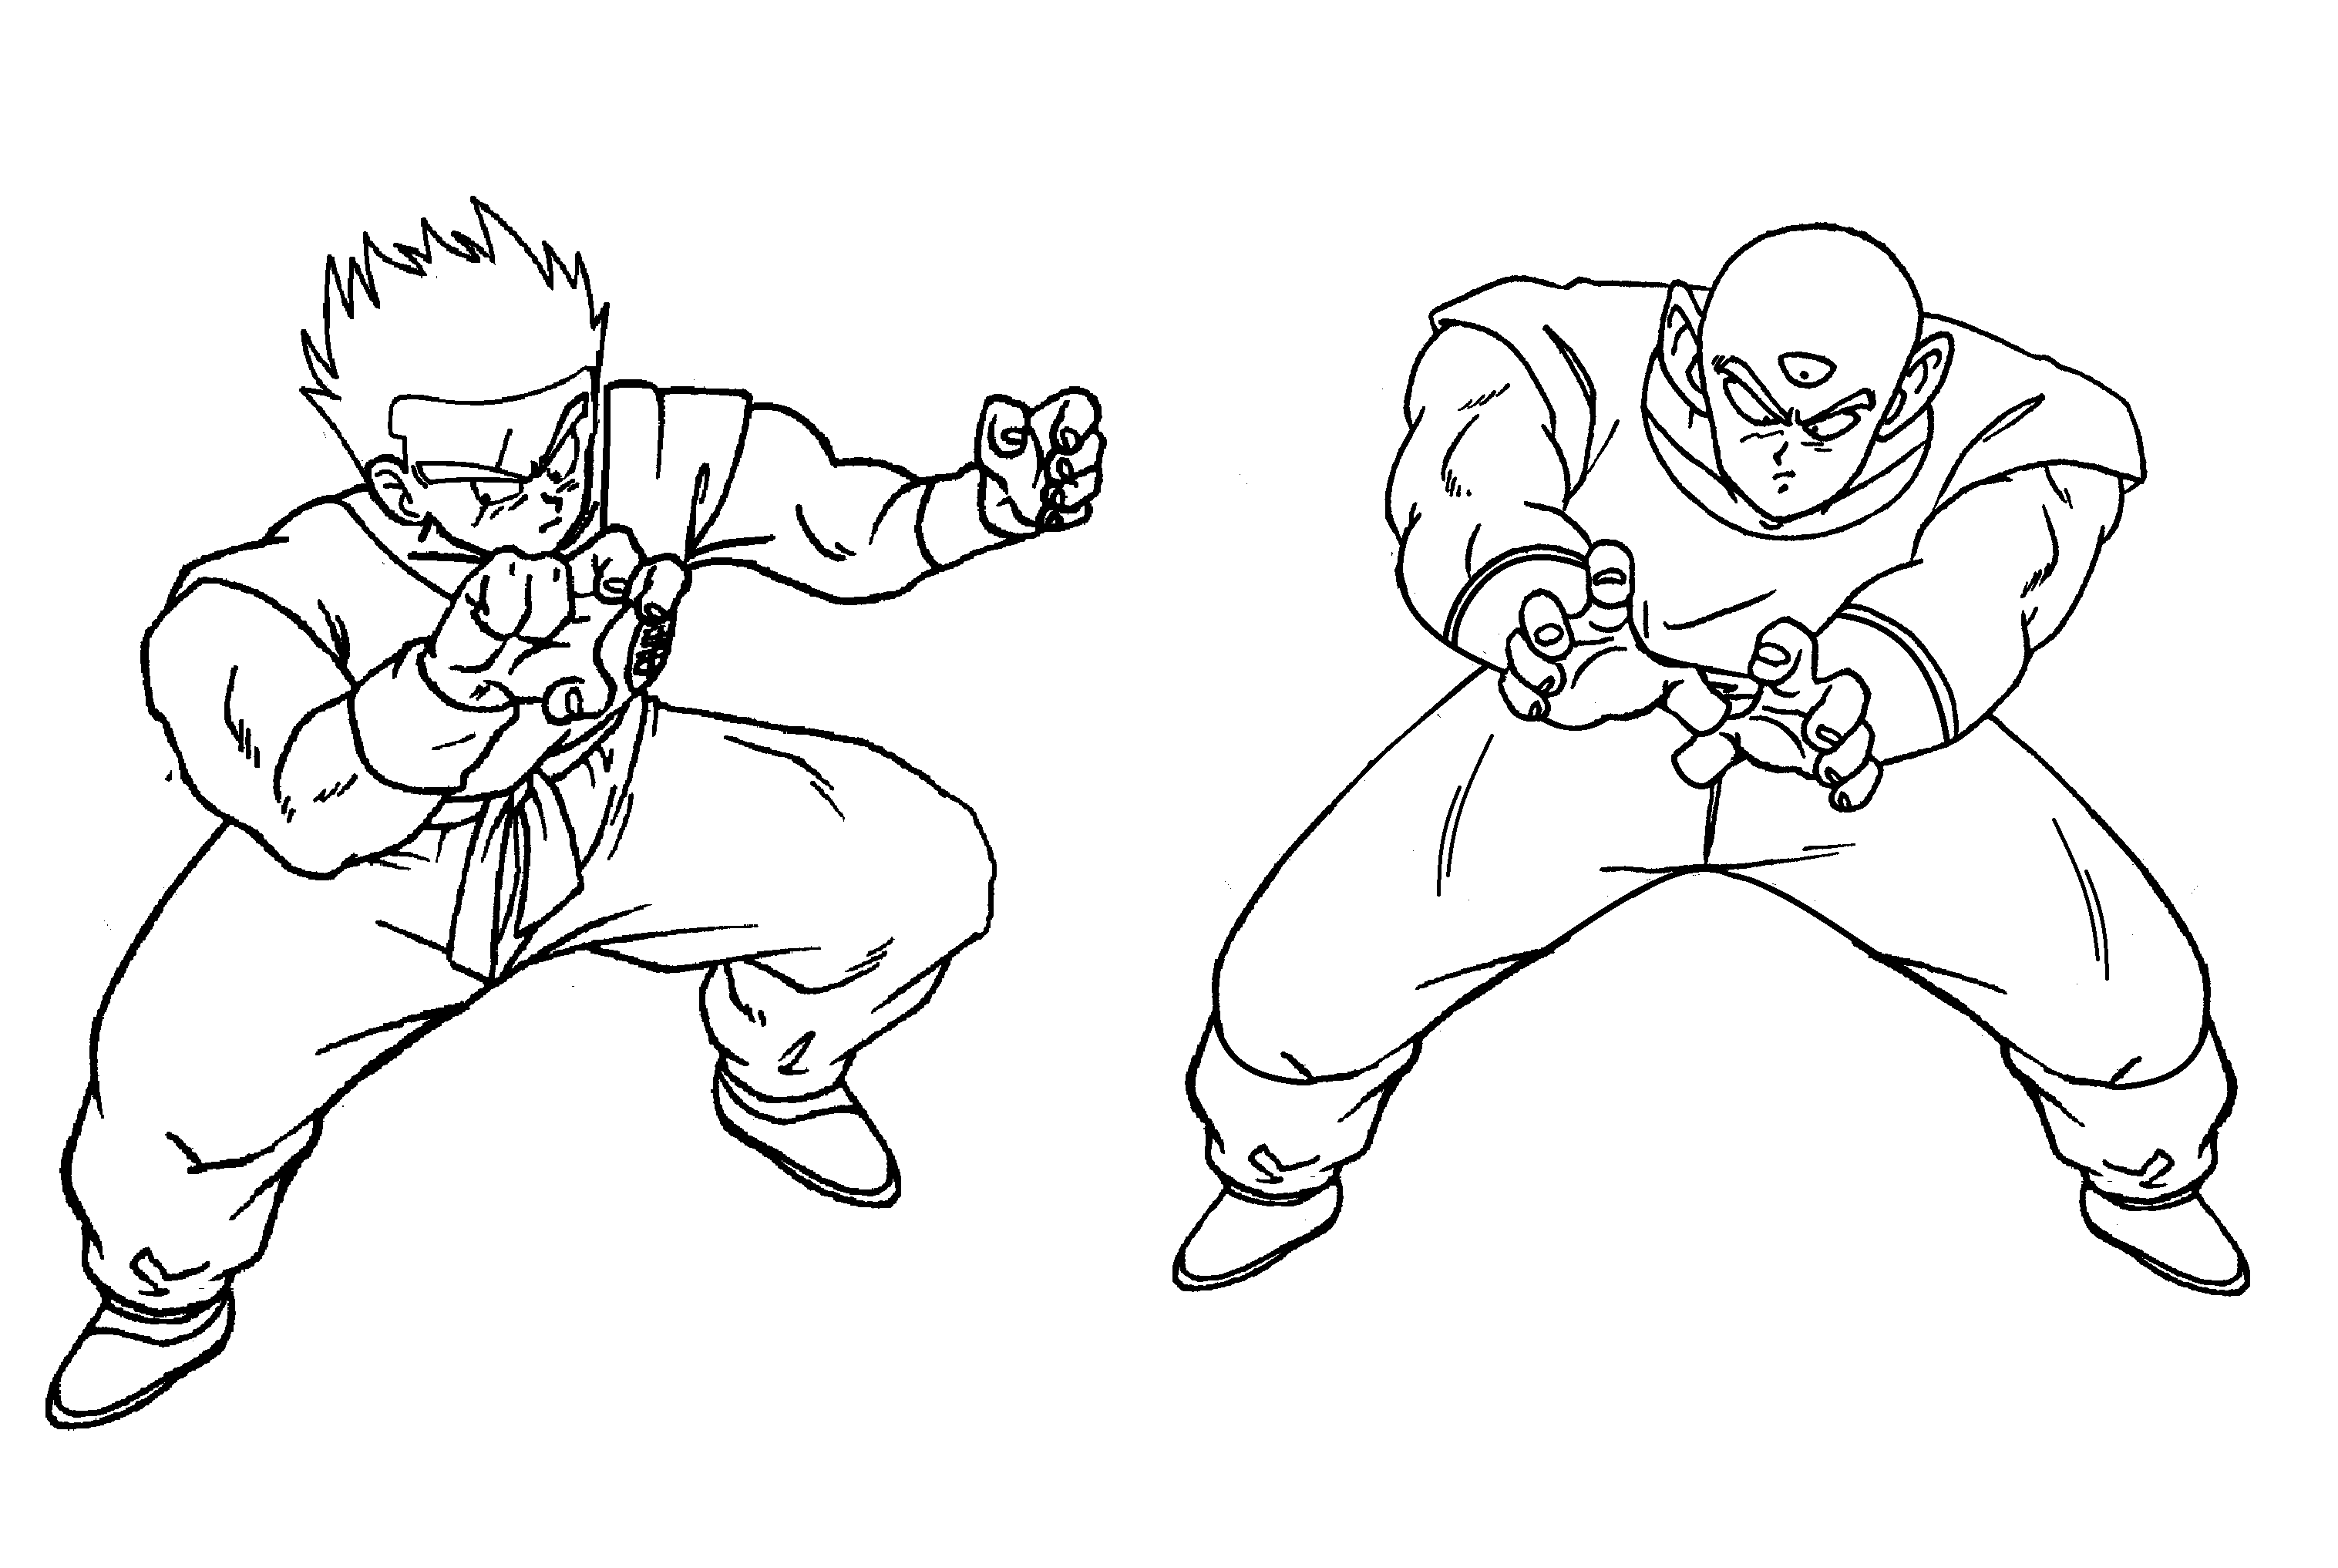 Tien Pages Coloring Pages